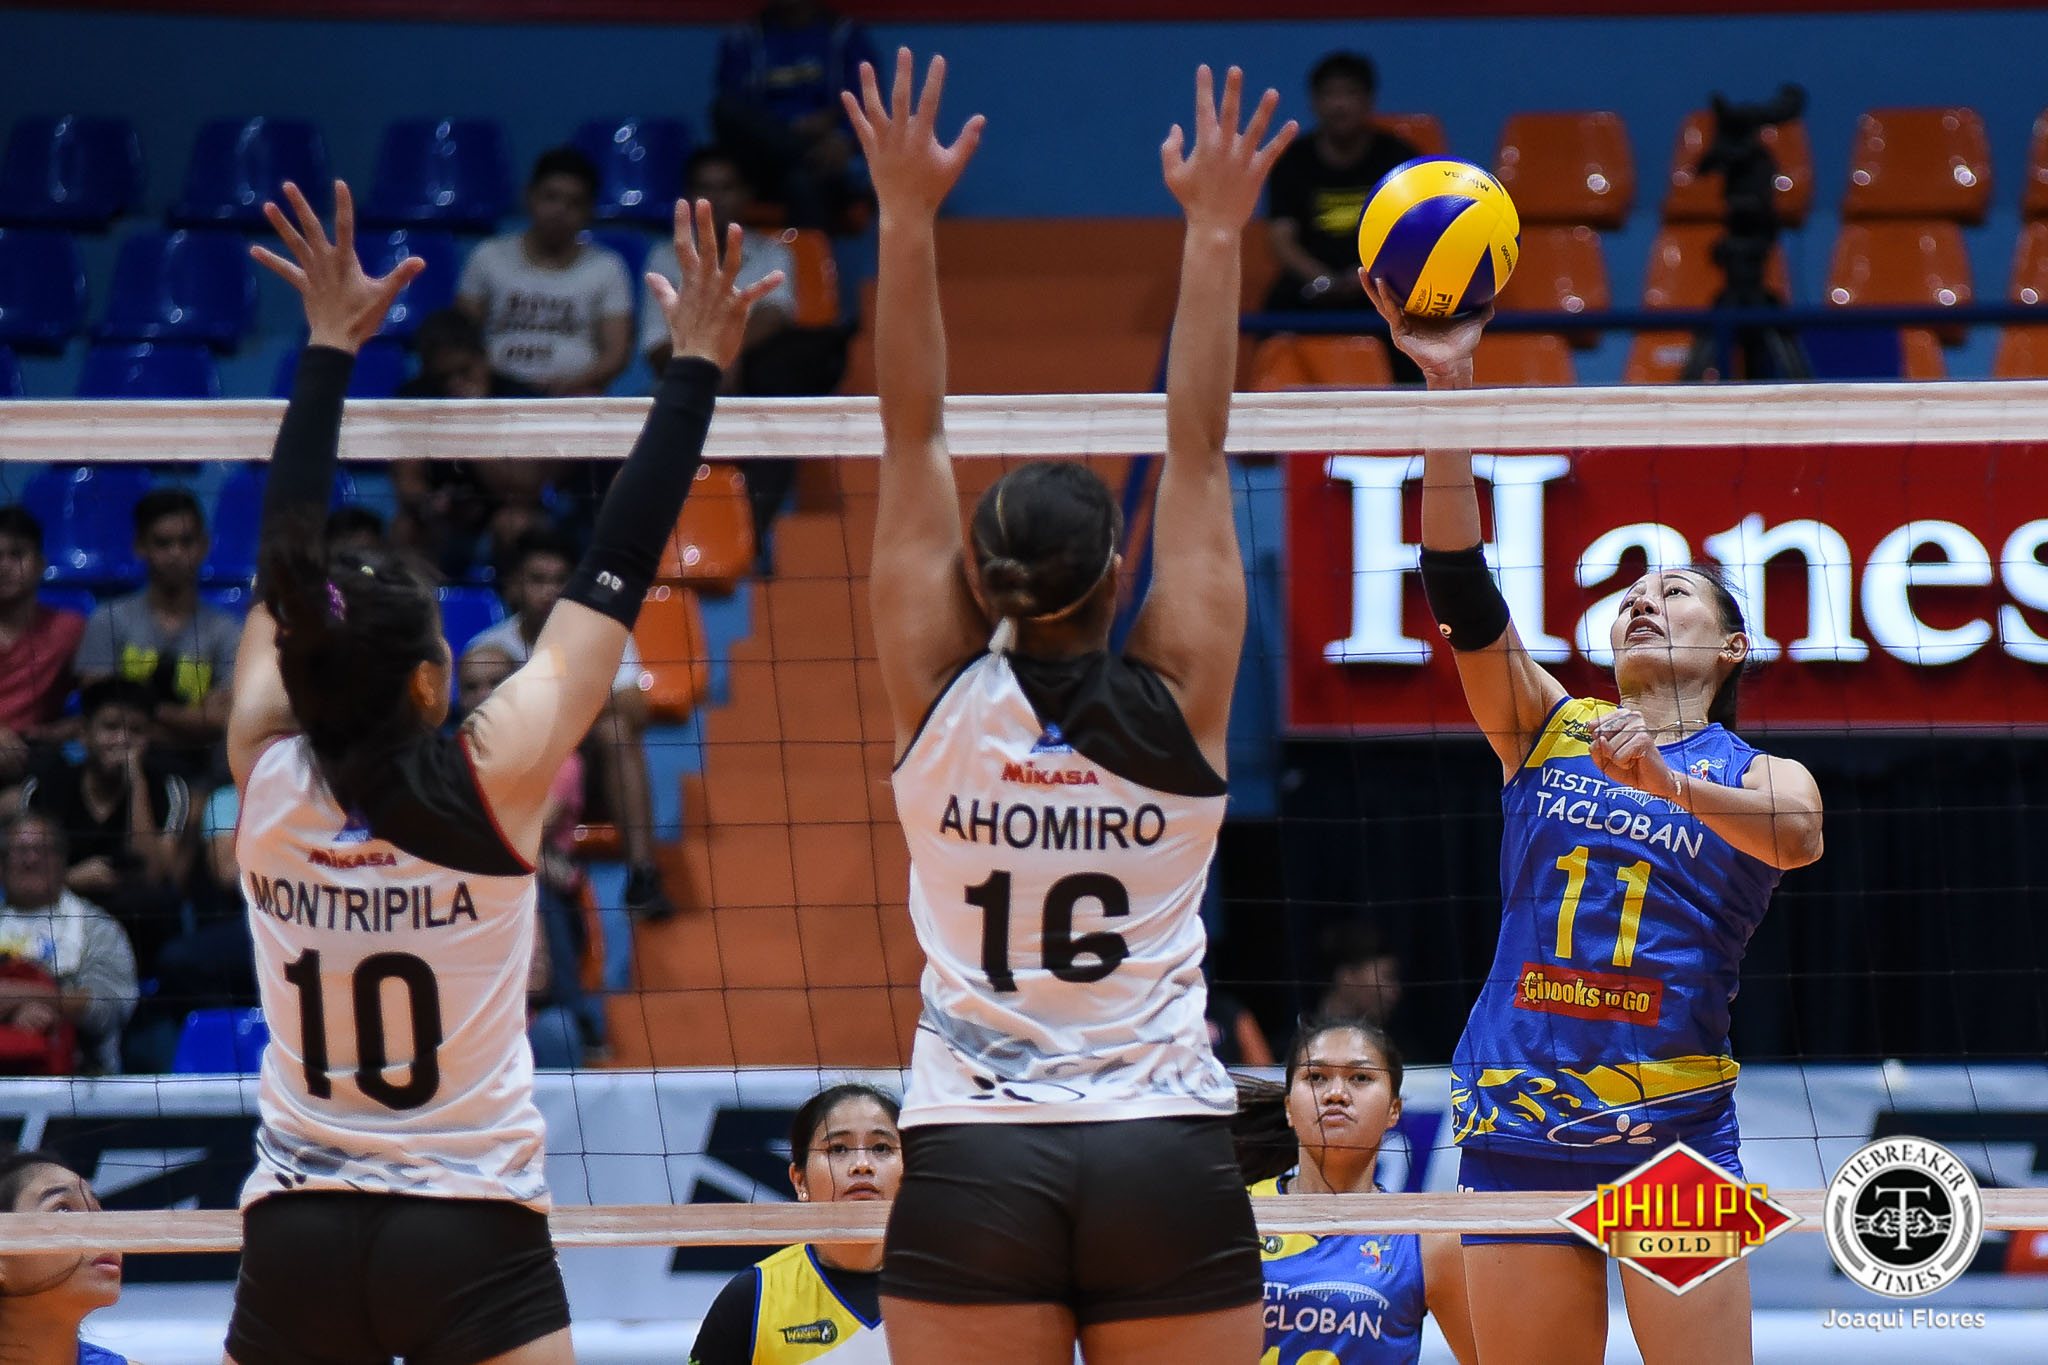 Tiebreaker Times Tacloban grinds out second straight win, sends BanKo-Perlas slumping News PVL Volleyball  Tacloban Fighting Warays Perlas Lady Spikers Nes Pamilar Kyle Negrito Kia Bright Jutarat Montripilia Jovielyn Prado Hyapa Amporn Eunice Galang Dong dela Cruz 2018 PVL Women's Reinforced Conference 2018 PVL Season